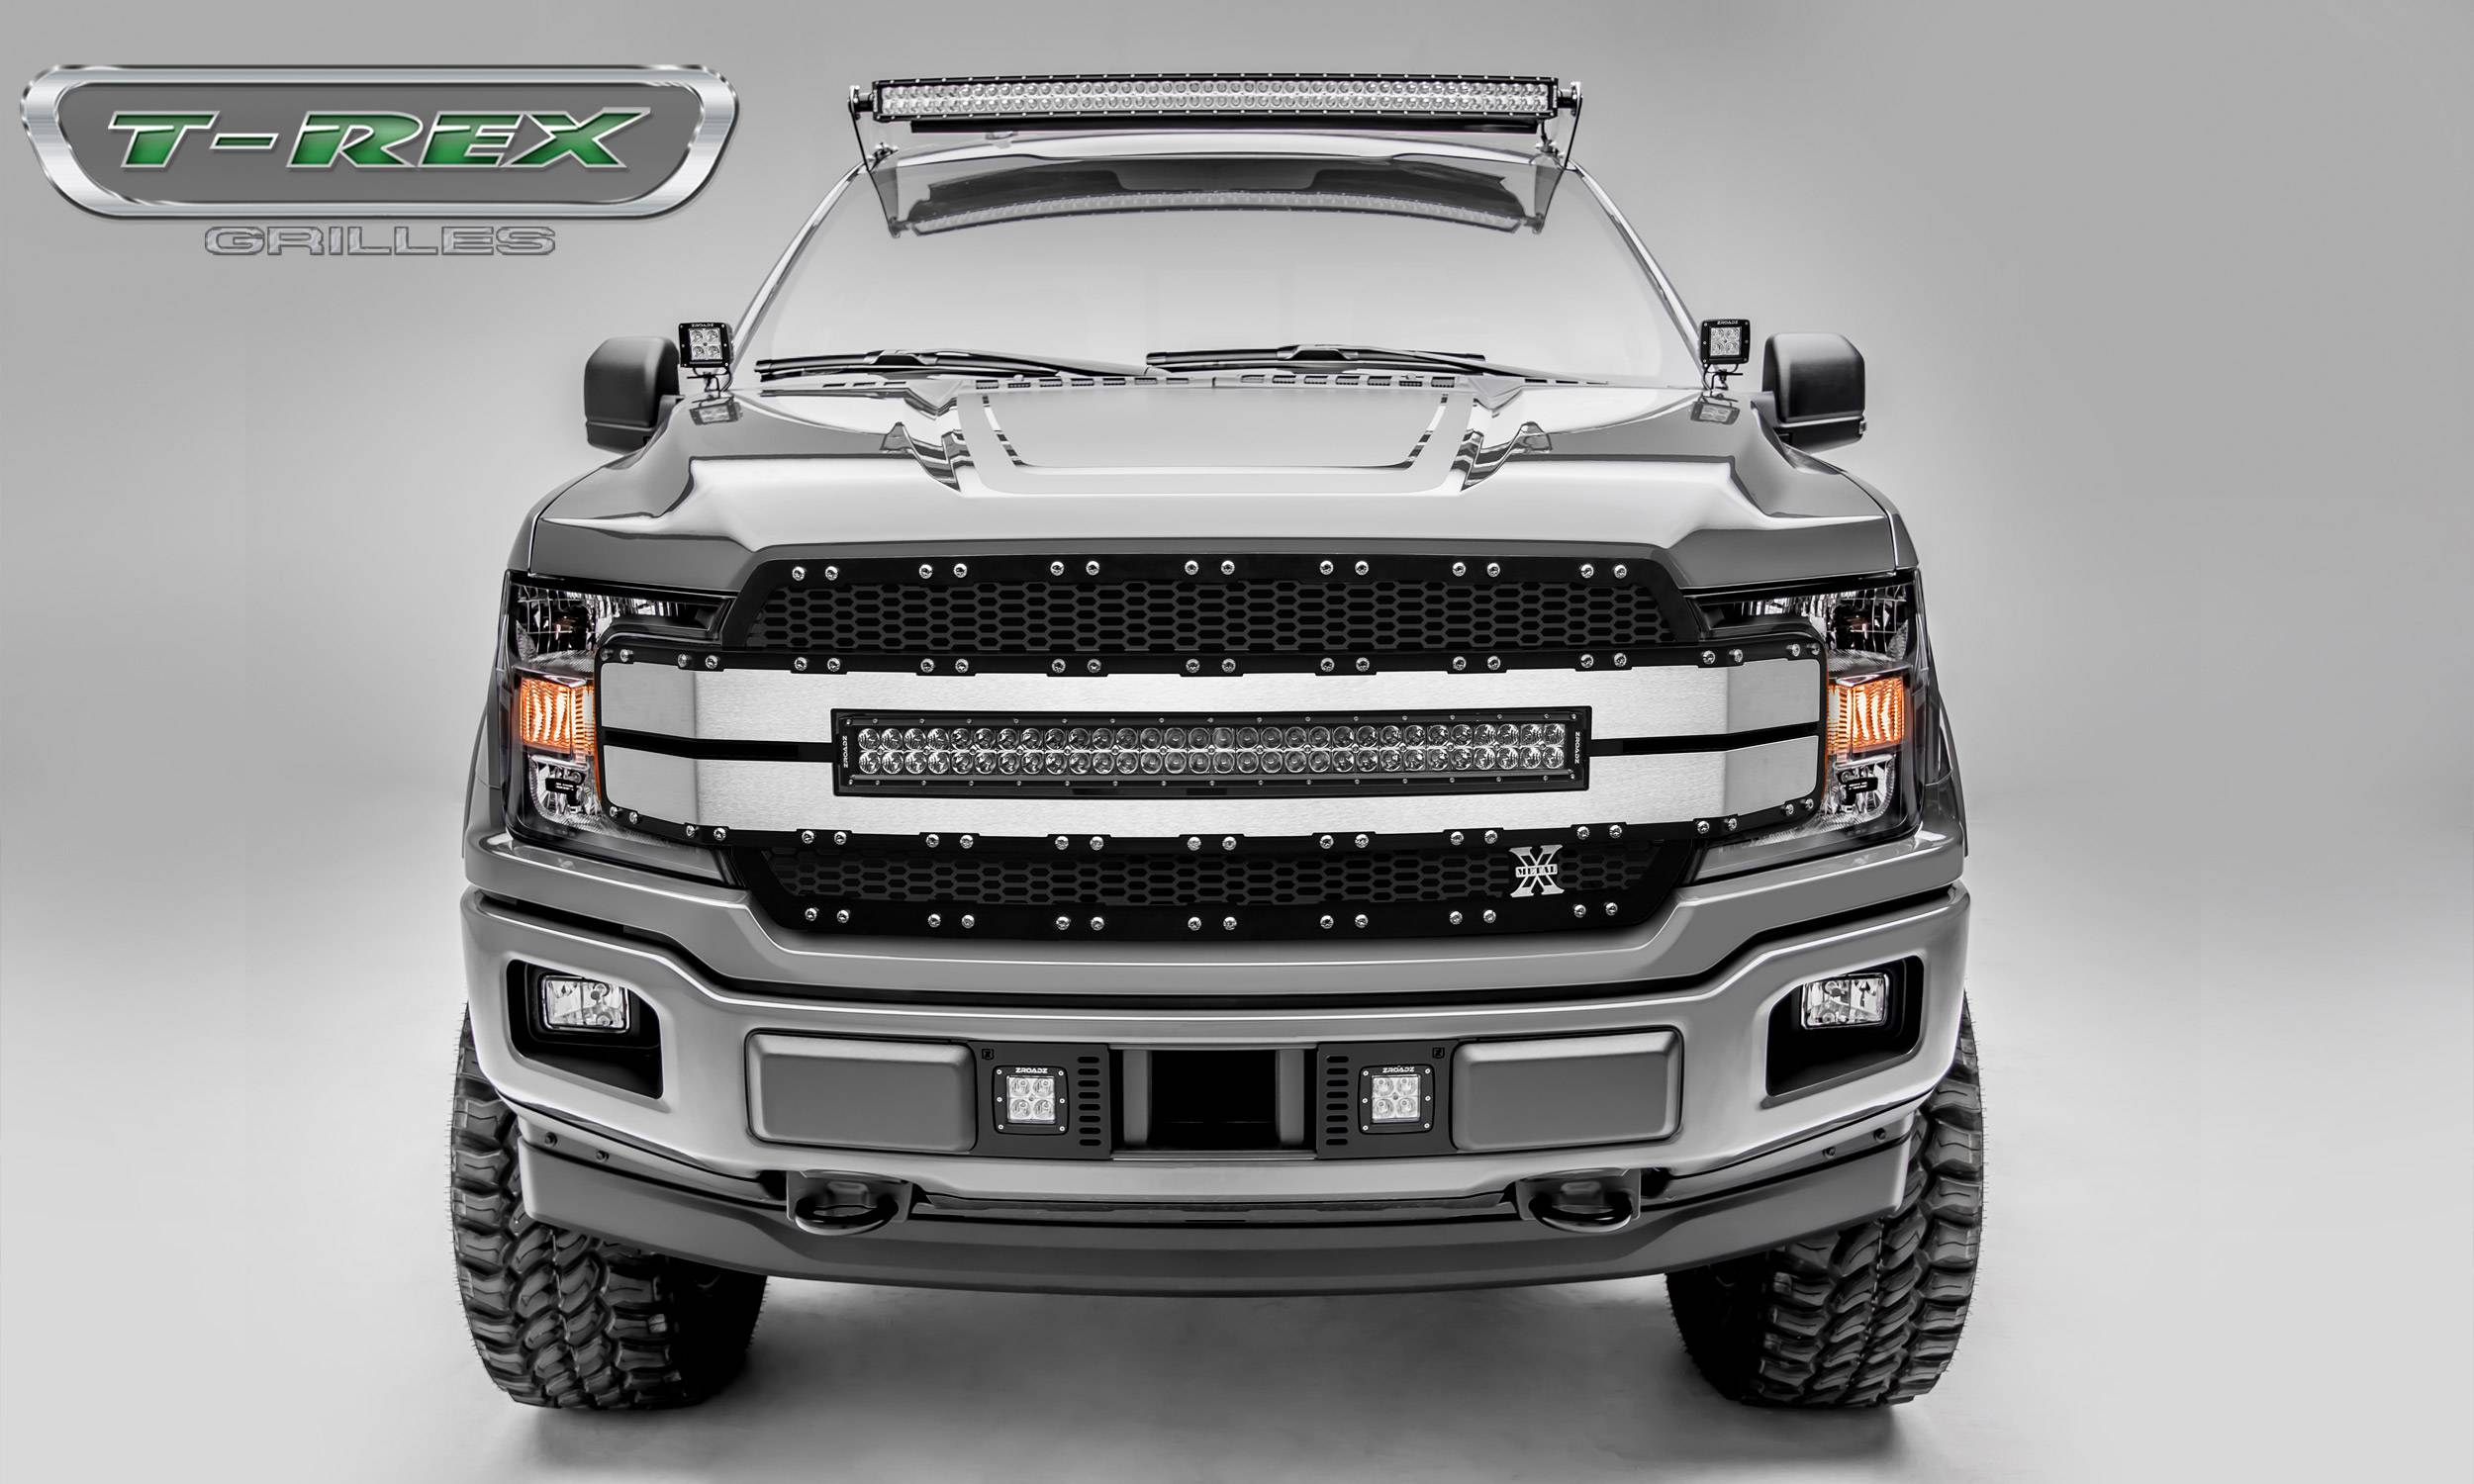 2018-2020 f-150 torch al grille, black mesh, brushed trim, 1 pc, replacement,  chrome studs, incl. (1) 30